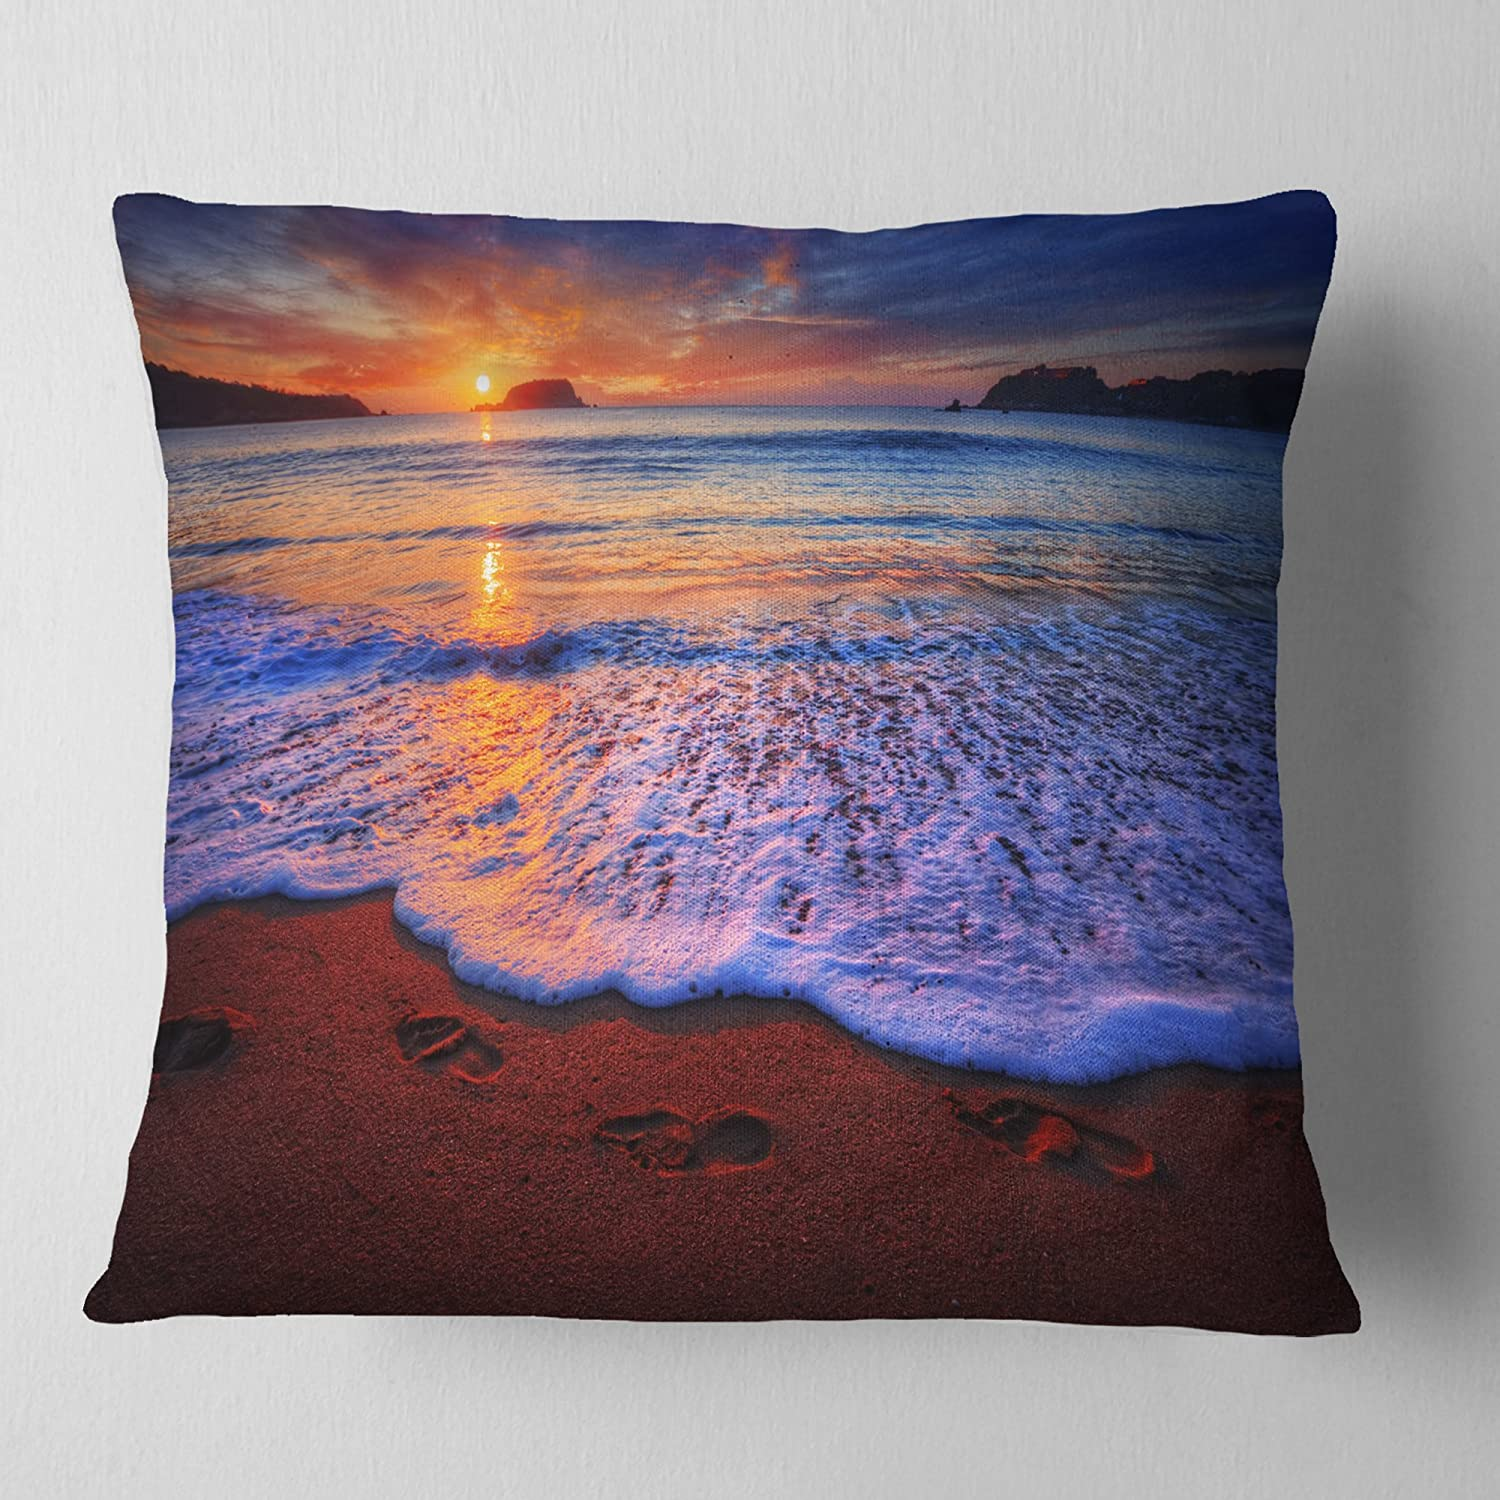 x 26 in in Insert Printed On Both Side Designart CU14498-26-26 Colorful Sunset Over Beautiful Shore Seashore Cushion Cover for Living Room Sofa Throw Pillow 26 in